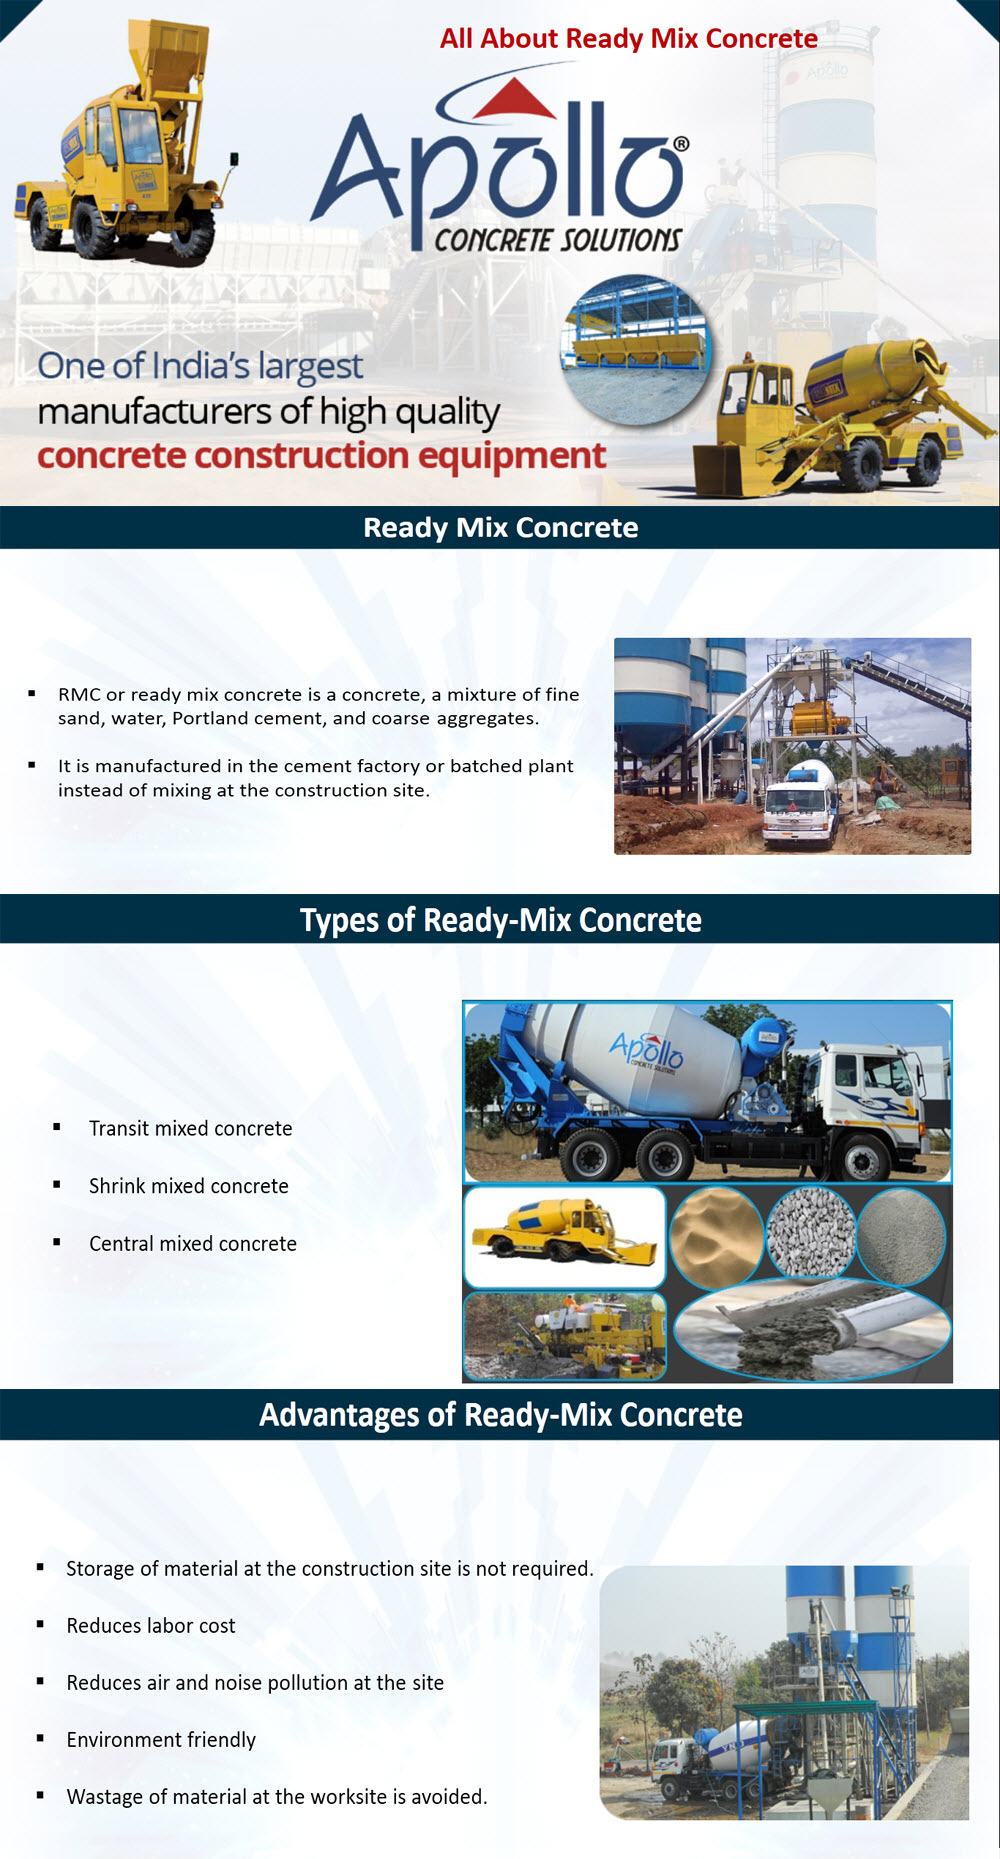 All About Ready Mix Concrete